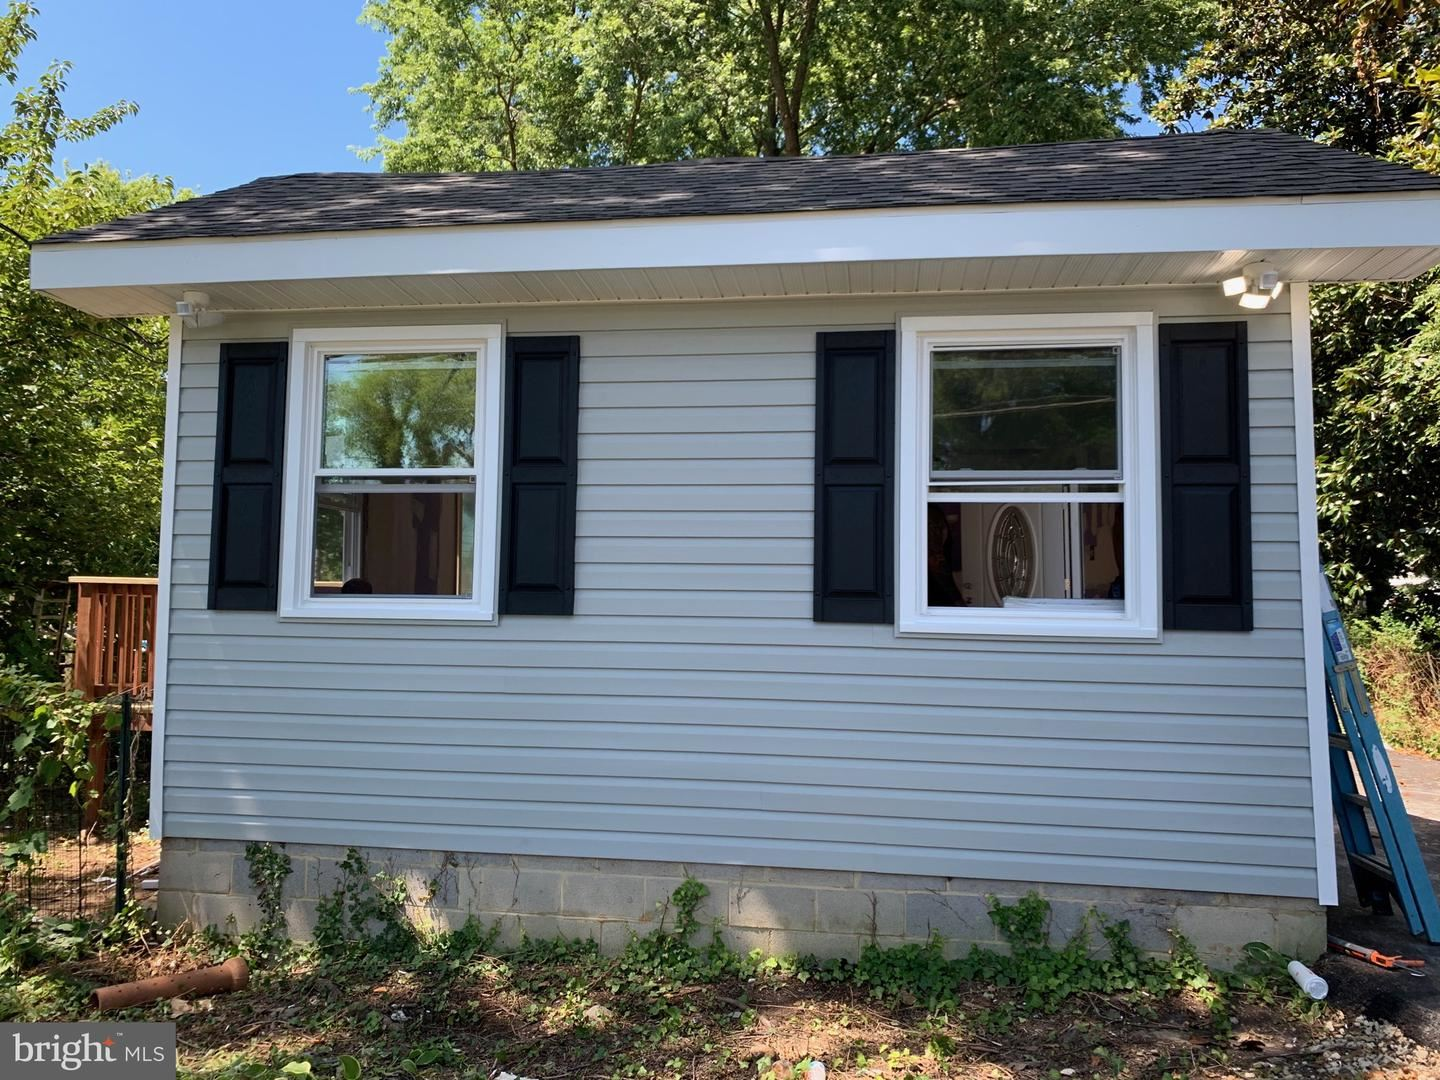 8234 FORT SMALLWOOD RD, Baltimore, MD 21226 - MLS#: MDAA462076